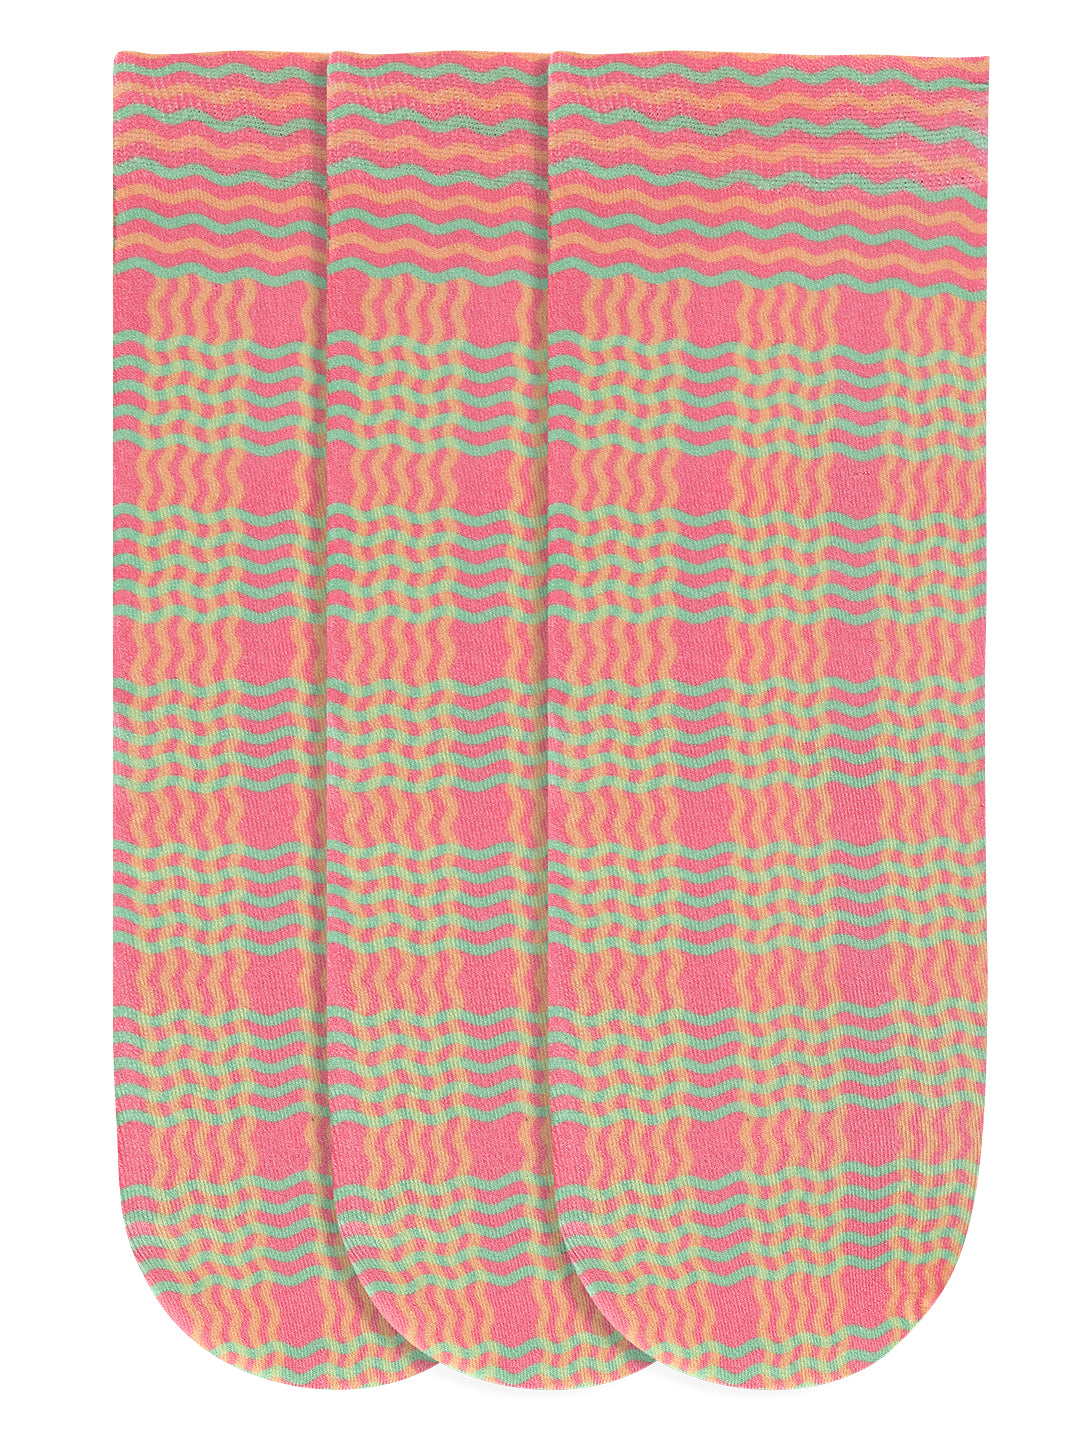 JUMP USA Women's Cotton Ankle Length Socks (Pink,Red,Green, Free Size) Pack of 3